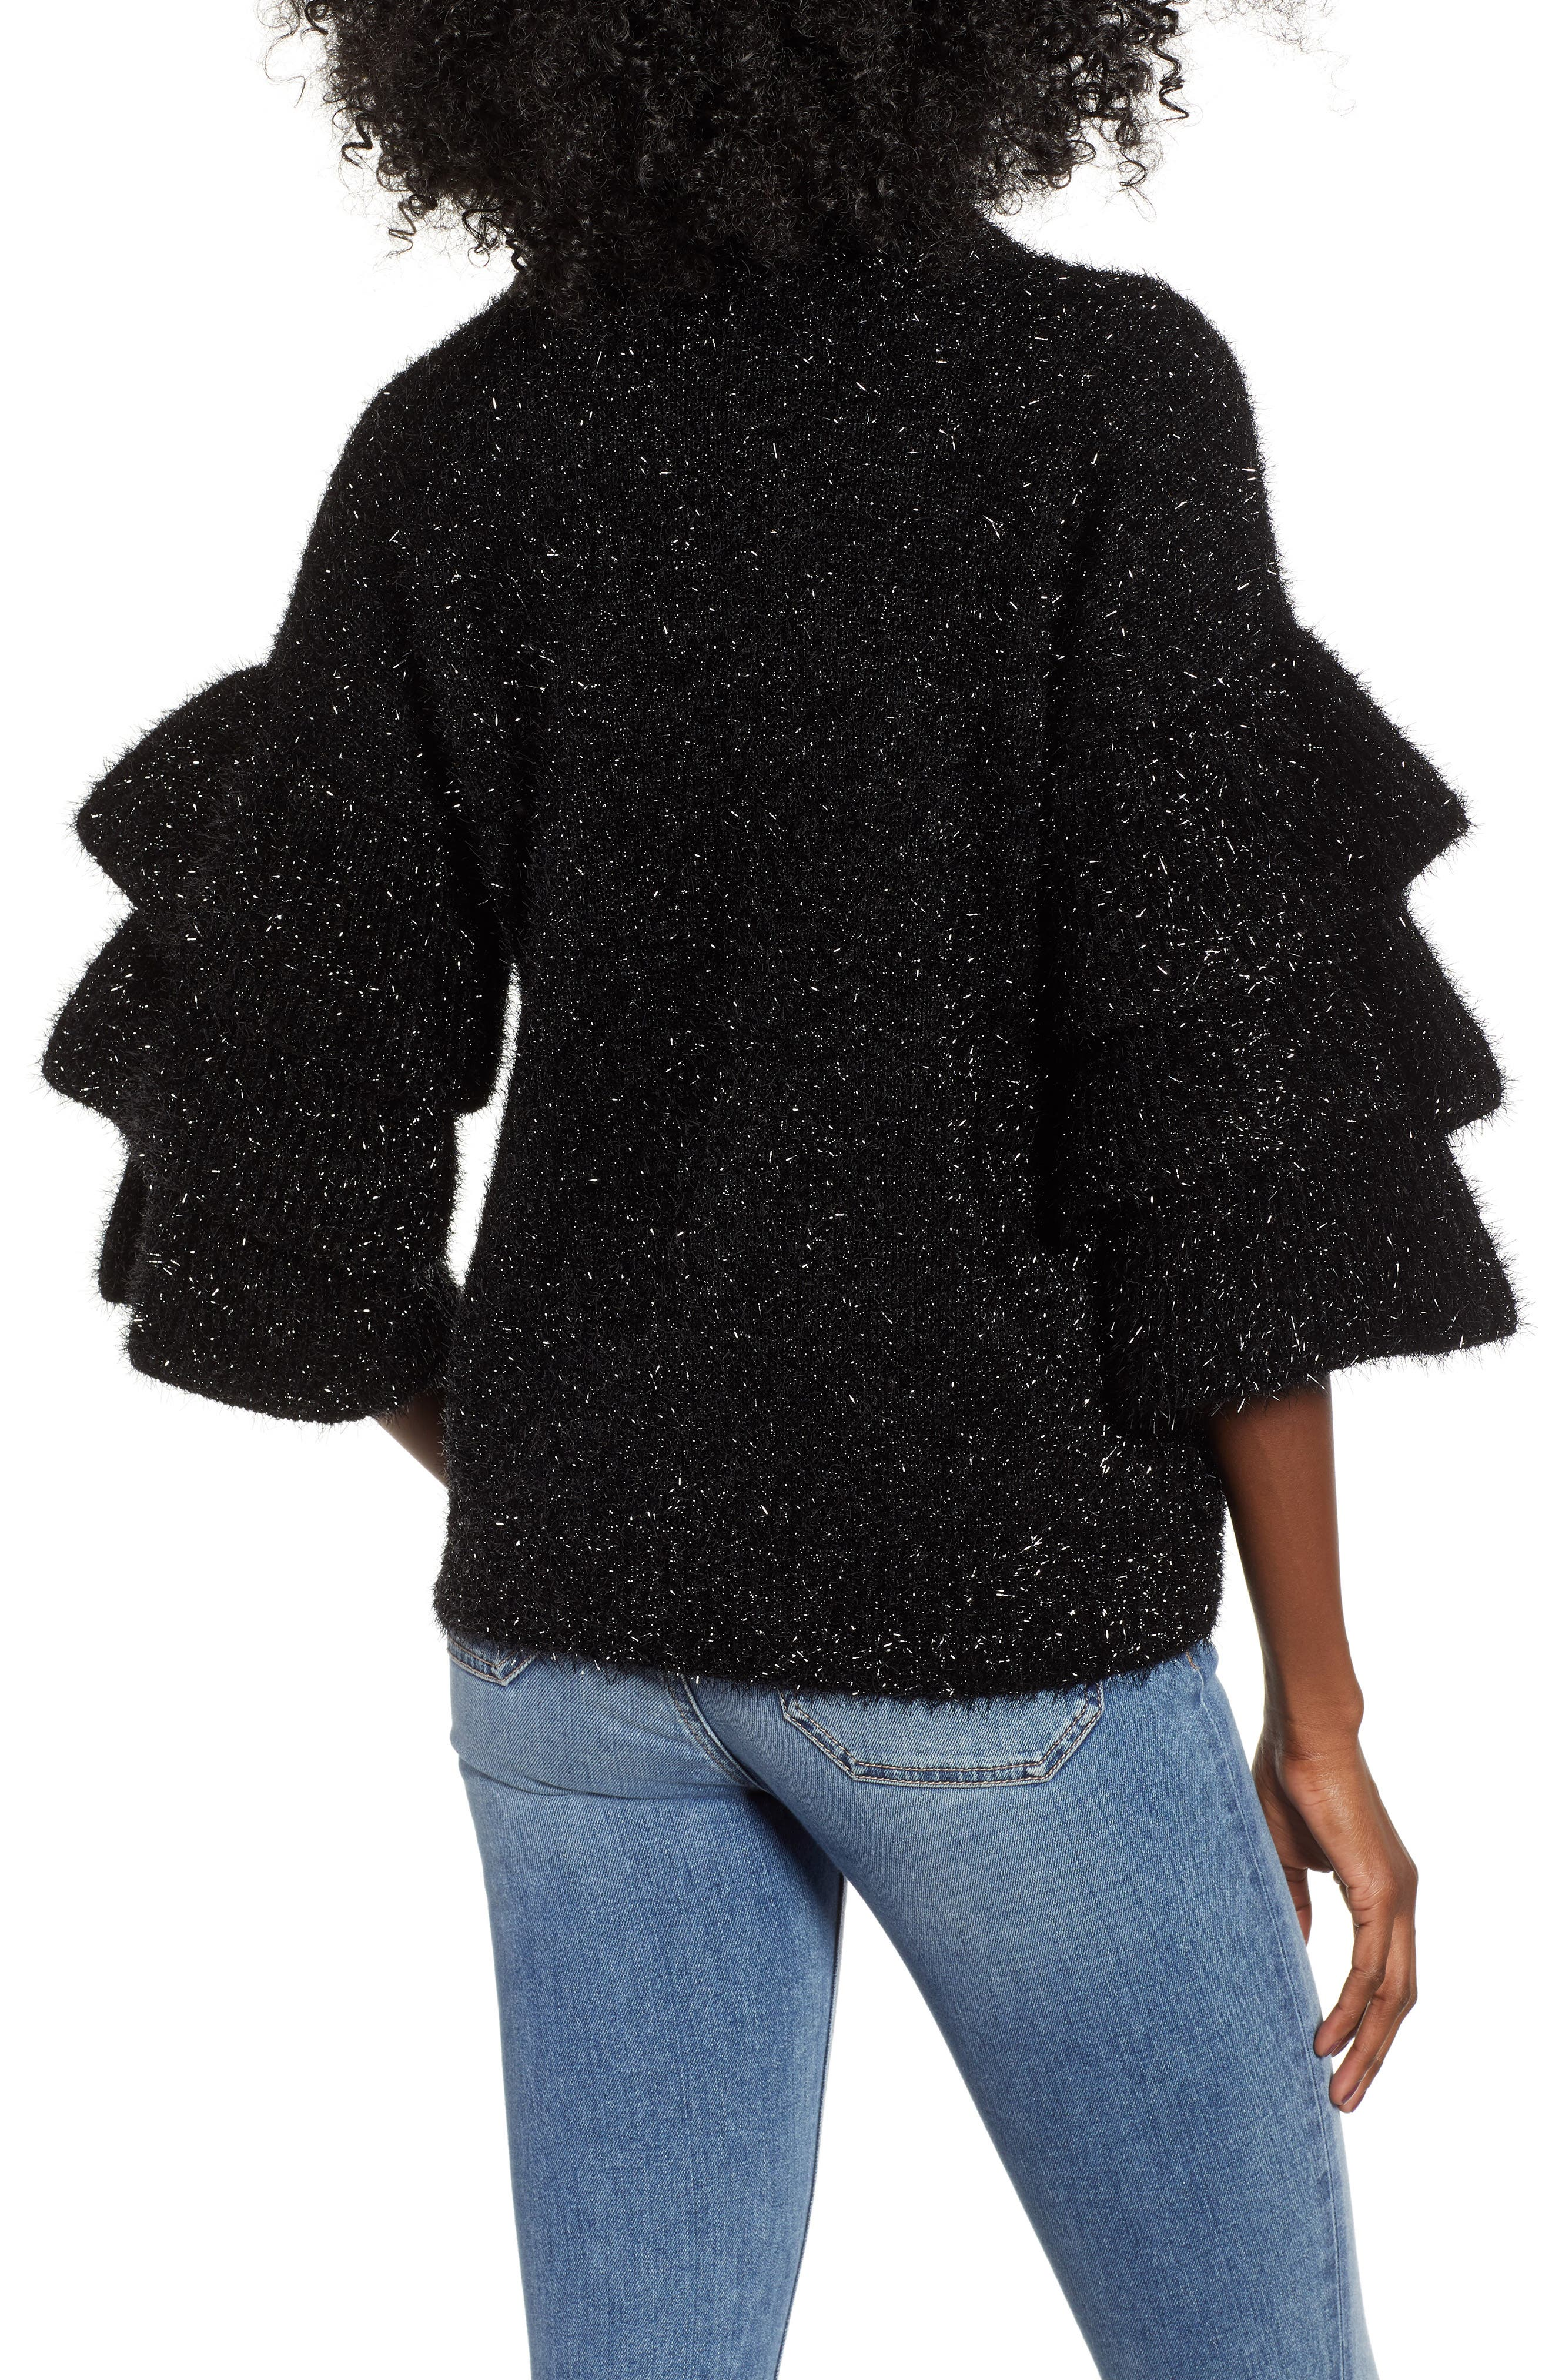 Tiered Sleeve Sweater,                             Alternate thumbnail 2, color,                             BLACK